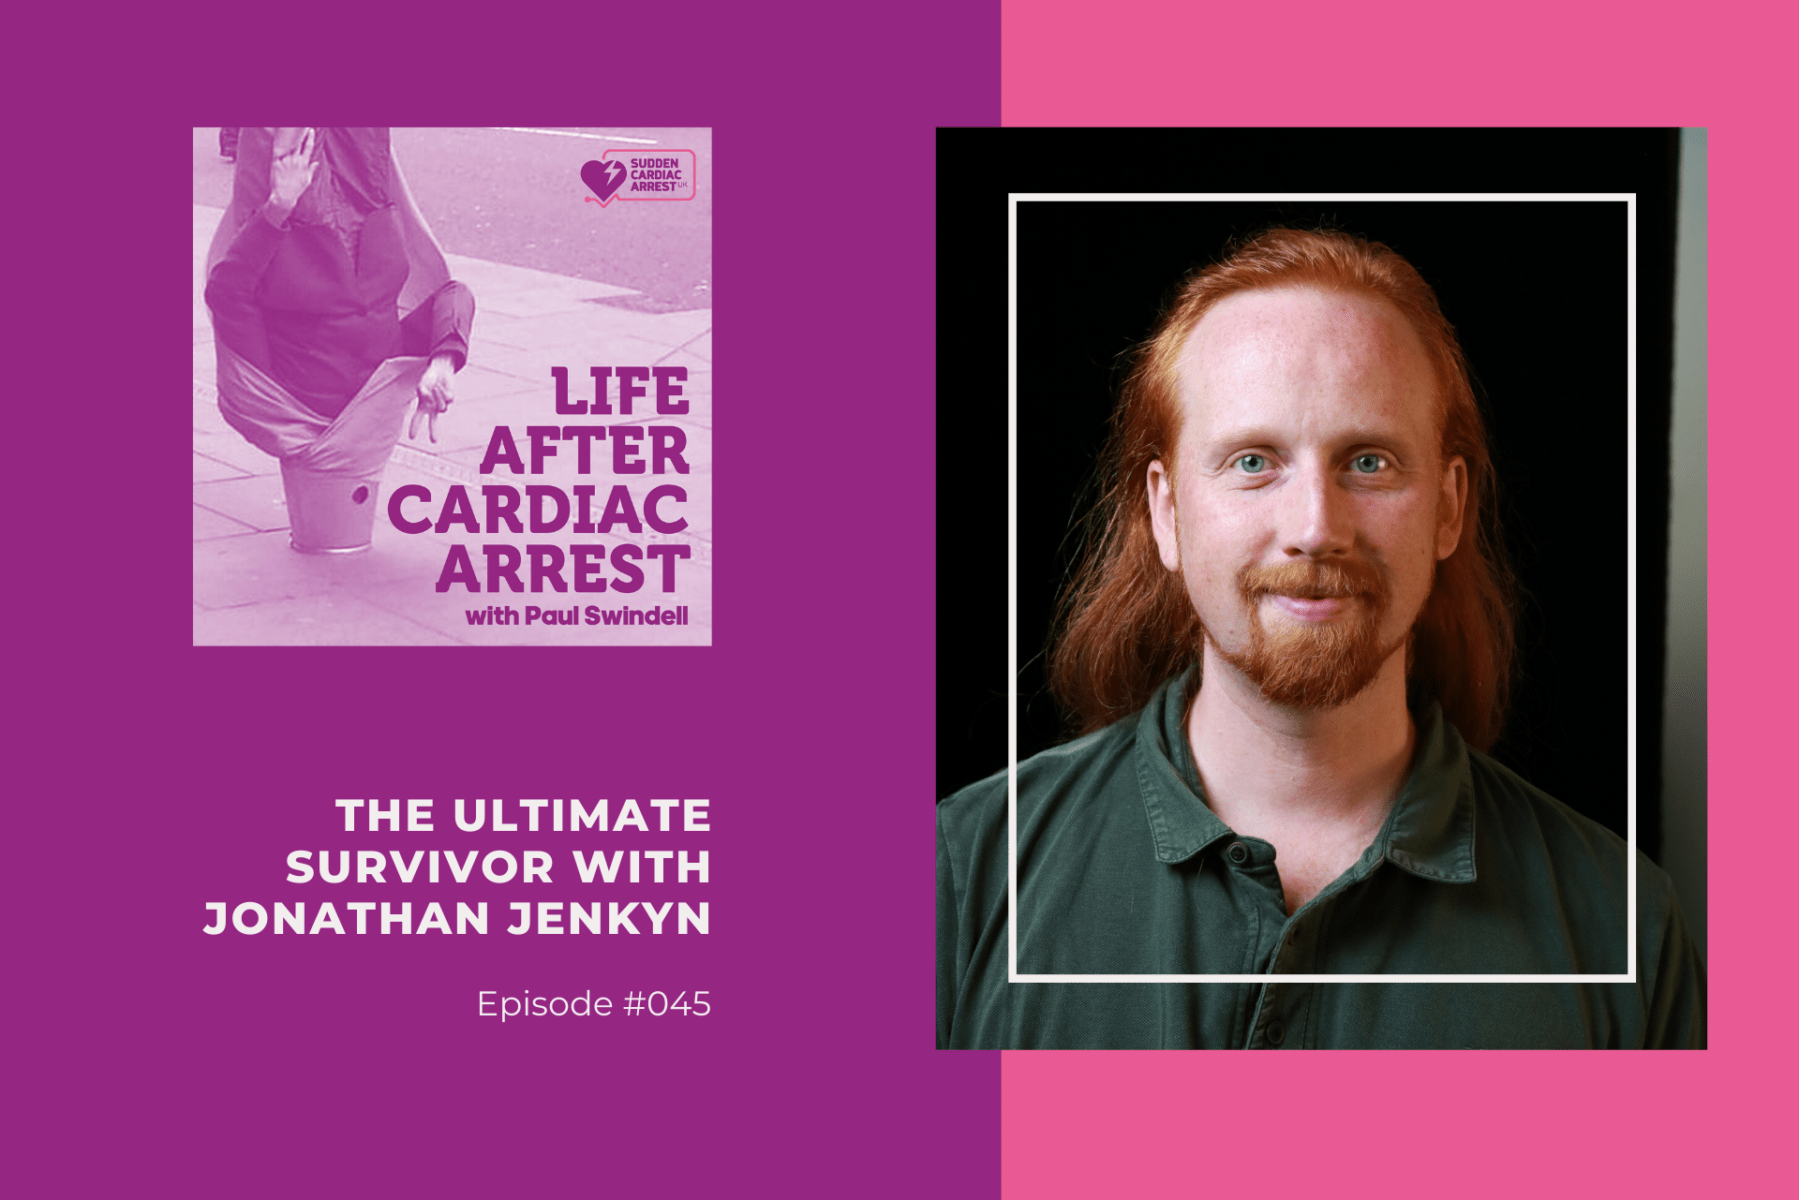 Jonathan Jenkyn tell his story on episode 45 of the Life After Cardiac Arrest podcast